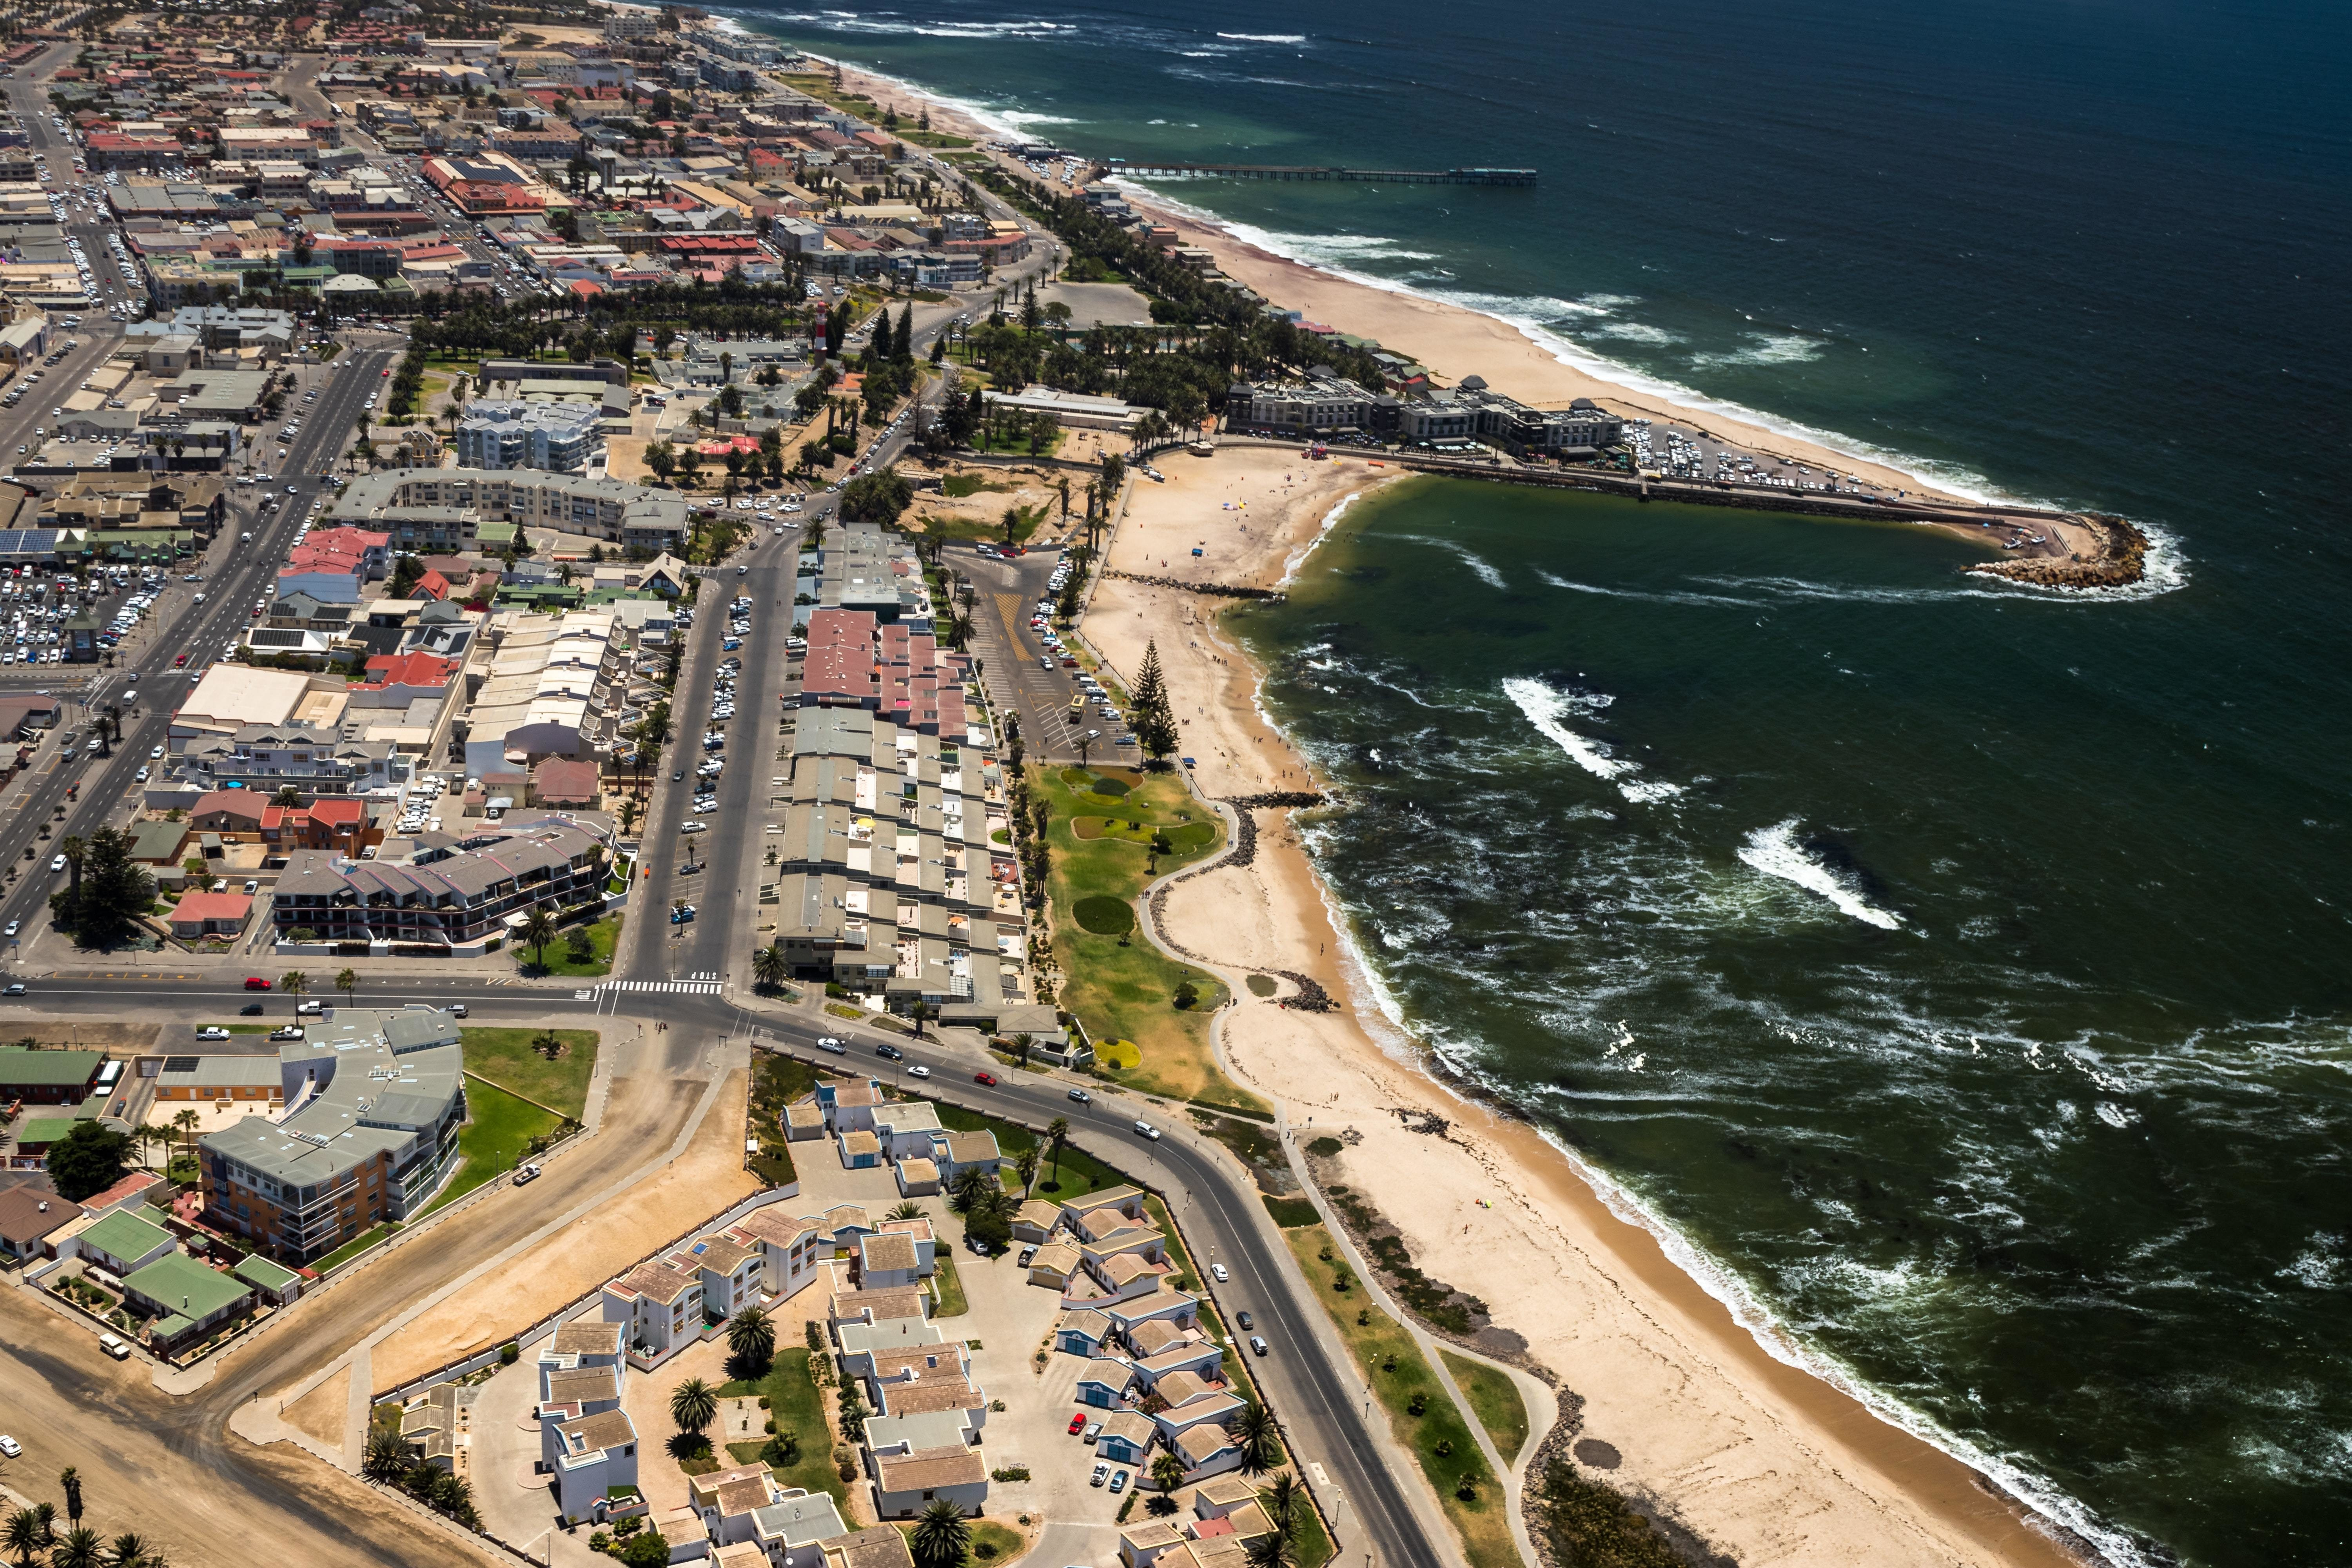 Image a seaside town of Swakopmund in Namibia with the ocean on one side and the town on the other